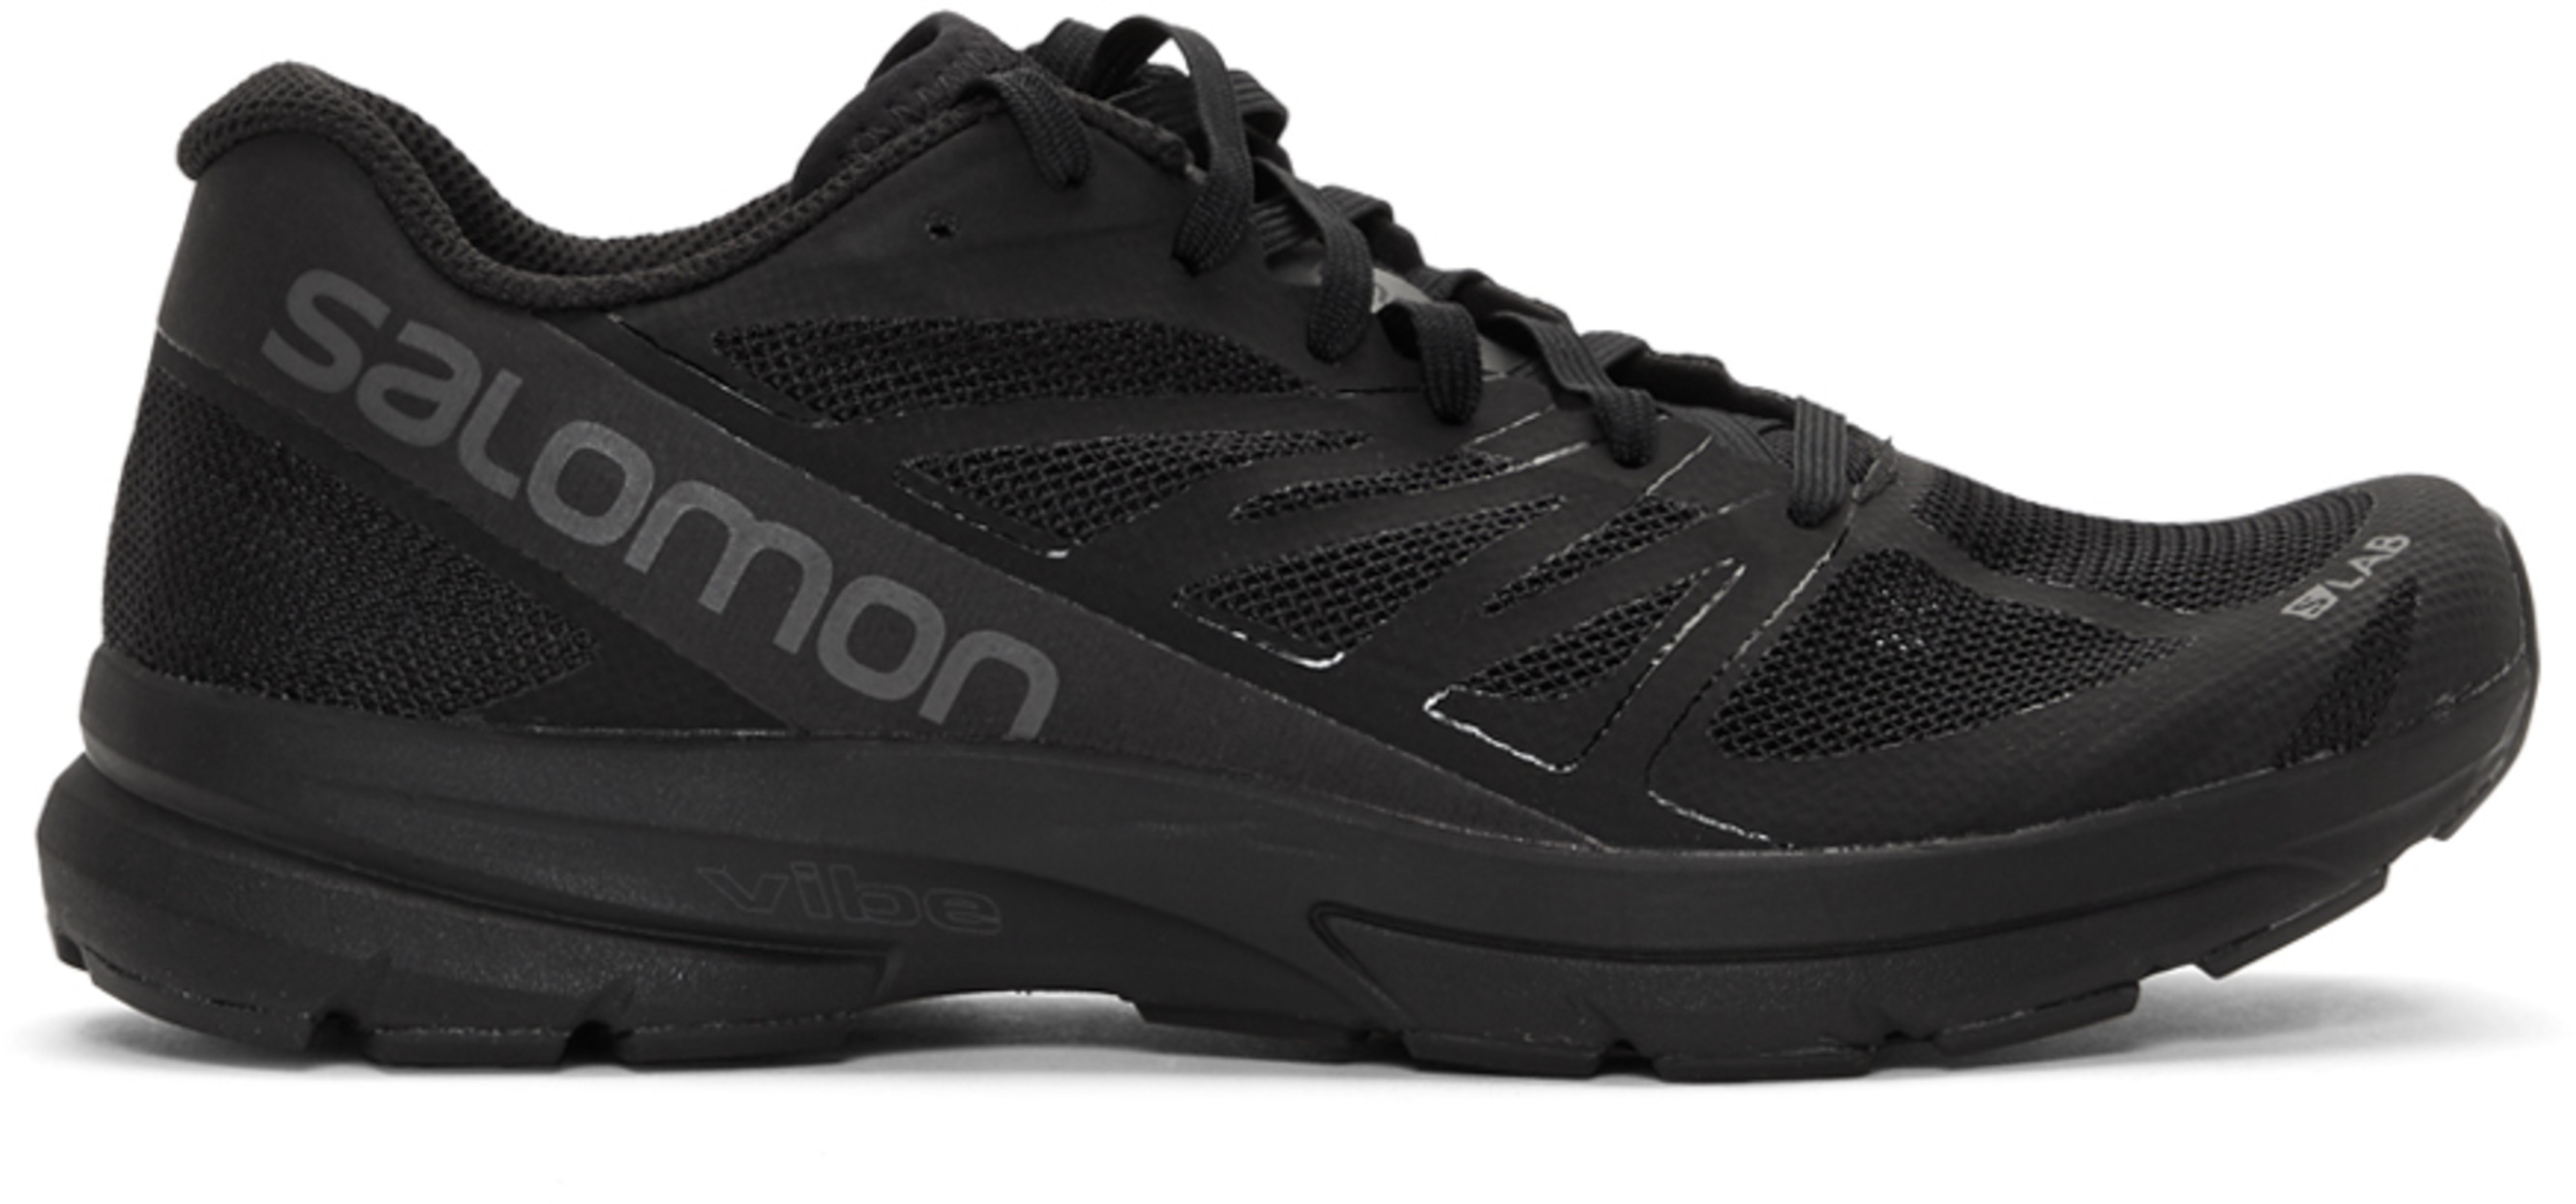 30f574bbbbd6 Salomon for Men SS19 Collection